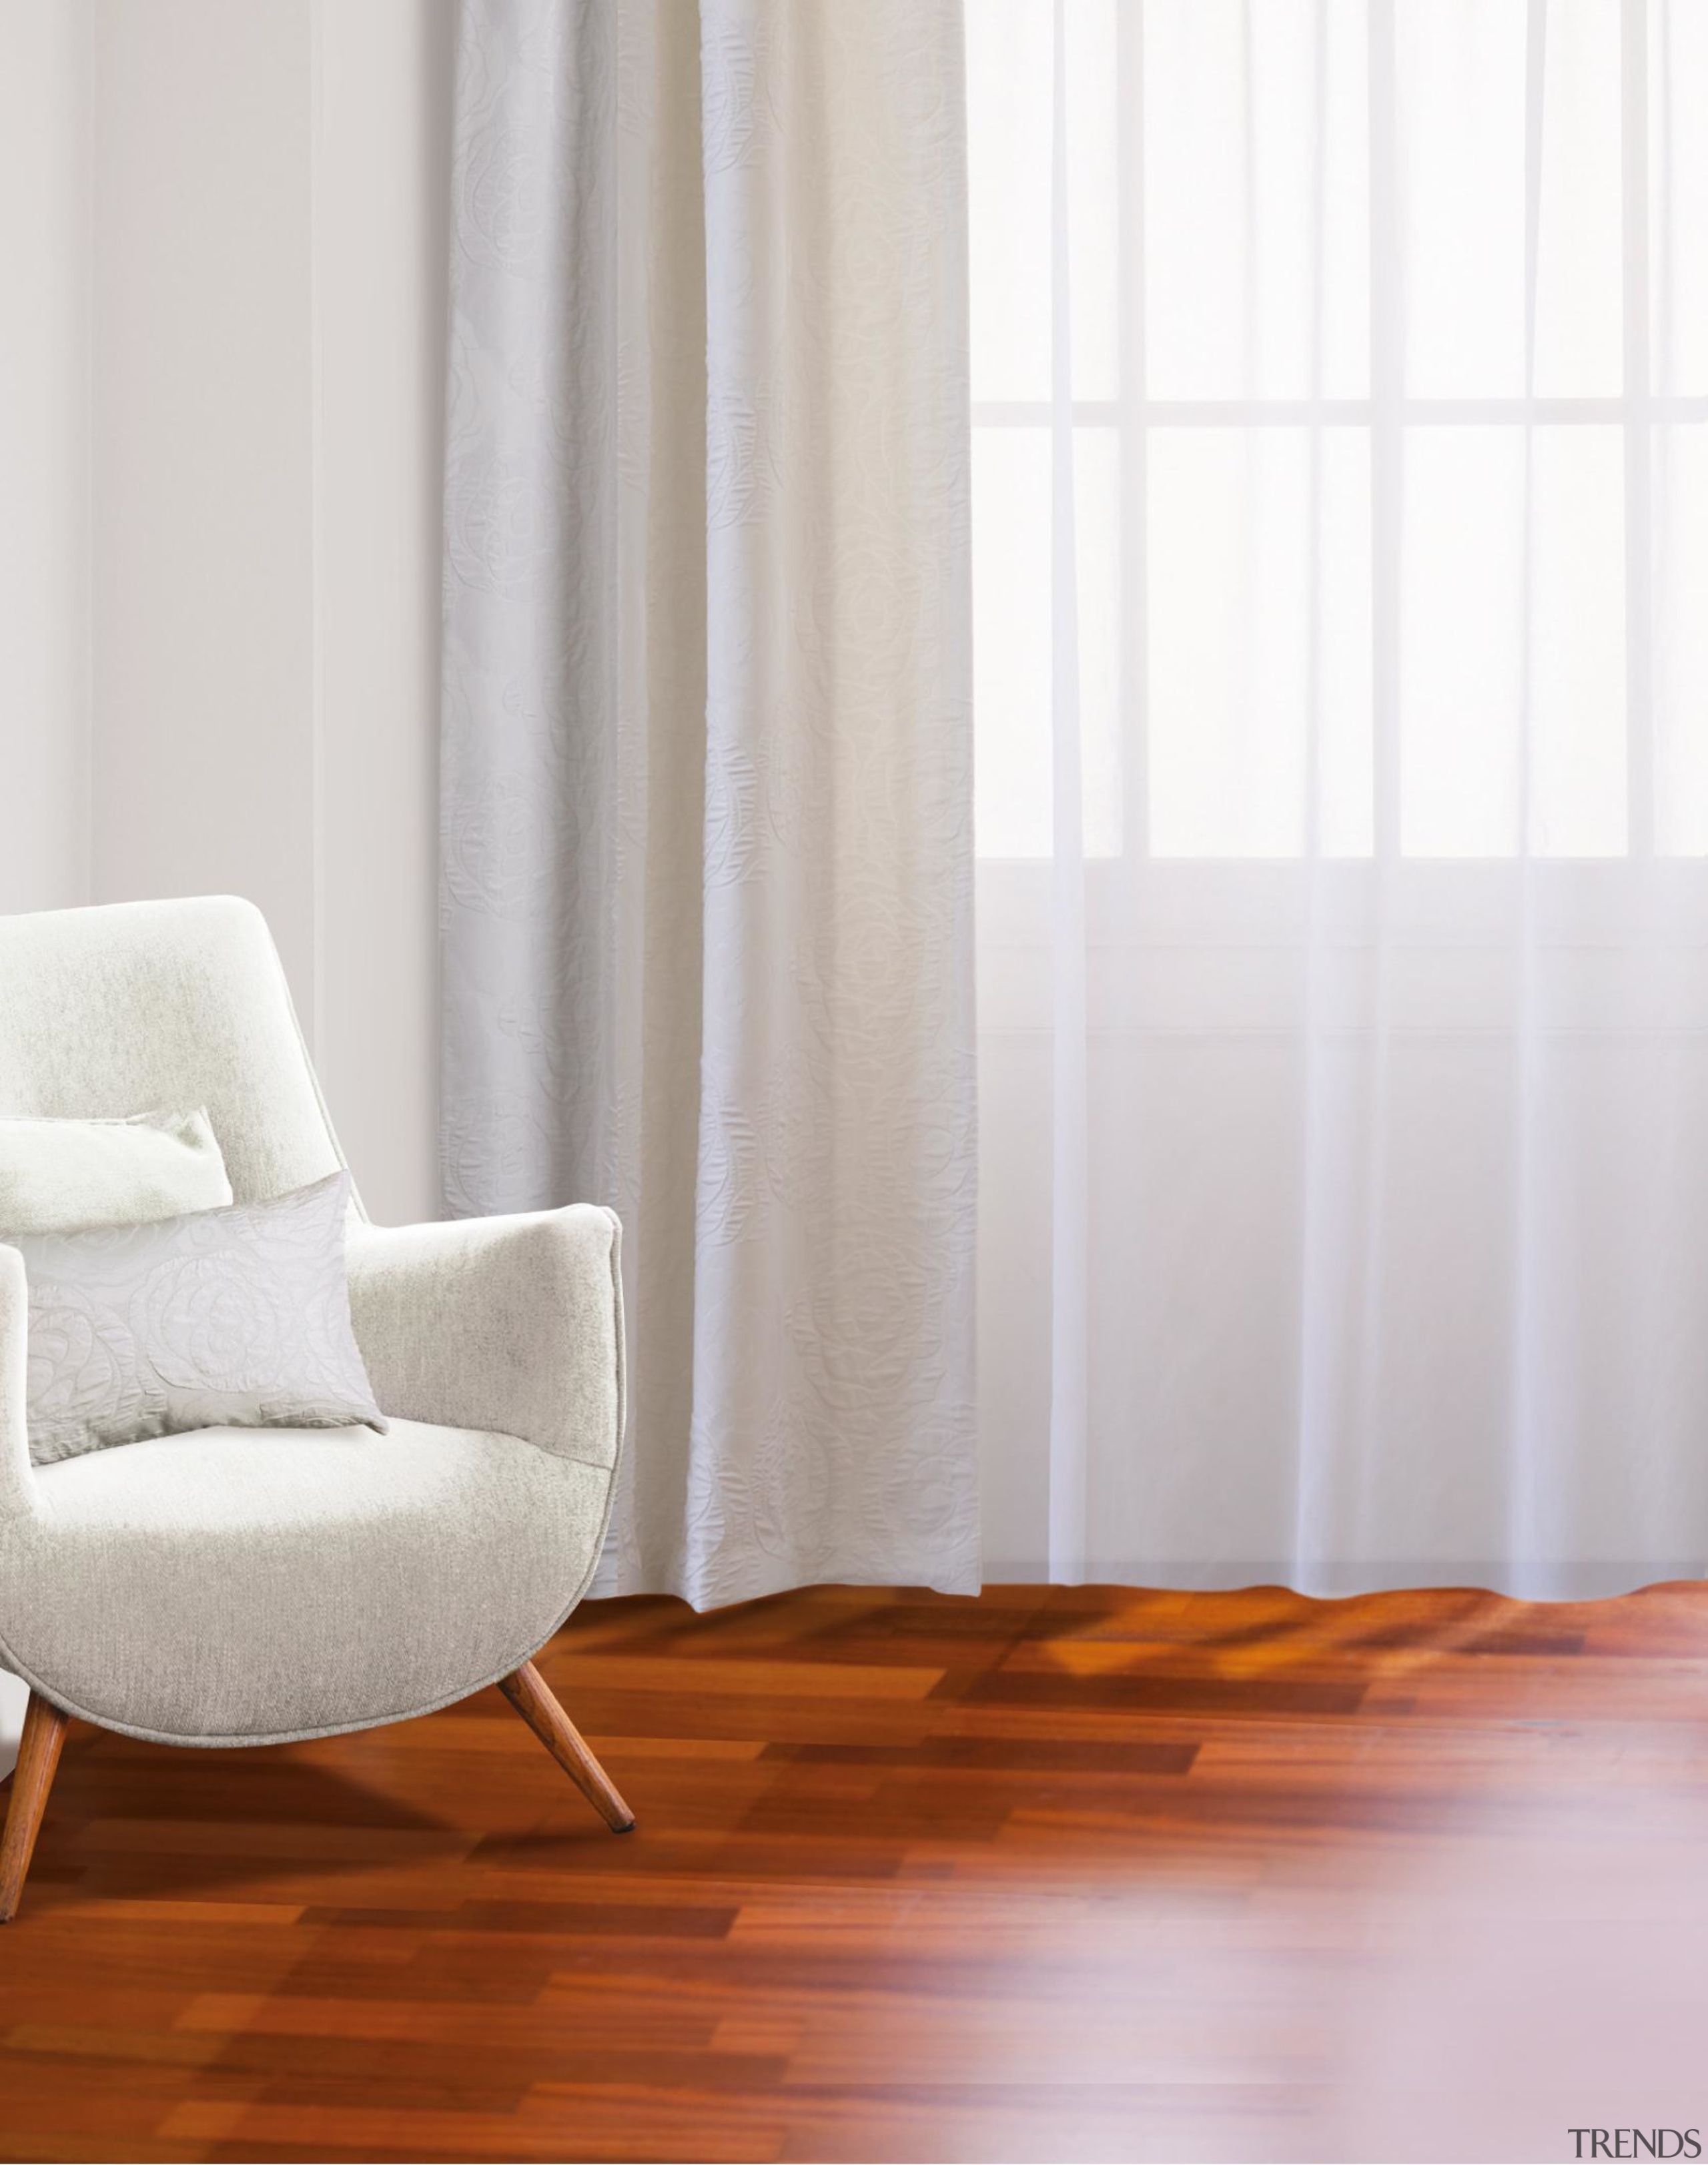 Pause - chair | couch | curtain | chair, couch, curtain, floor, flooring, furniture, hardwood, interior design, laminate flooring, living room, product, room, table, textile, wall, window, window blind, window covering, window treatment, wood, wood flooring, white